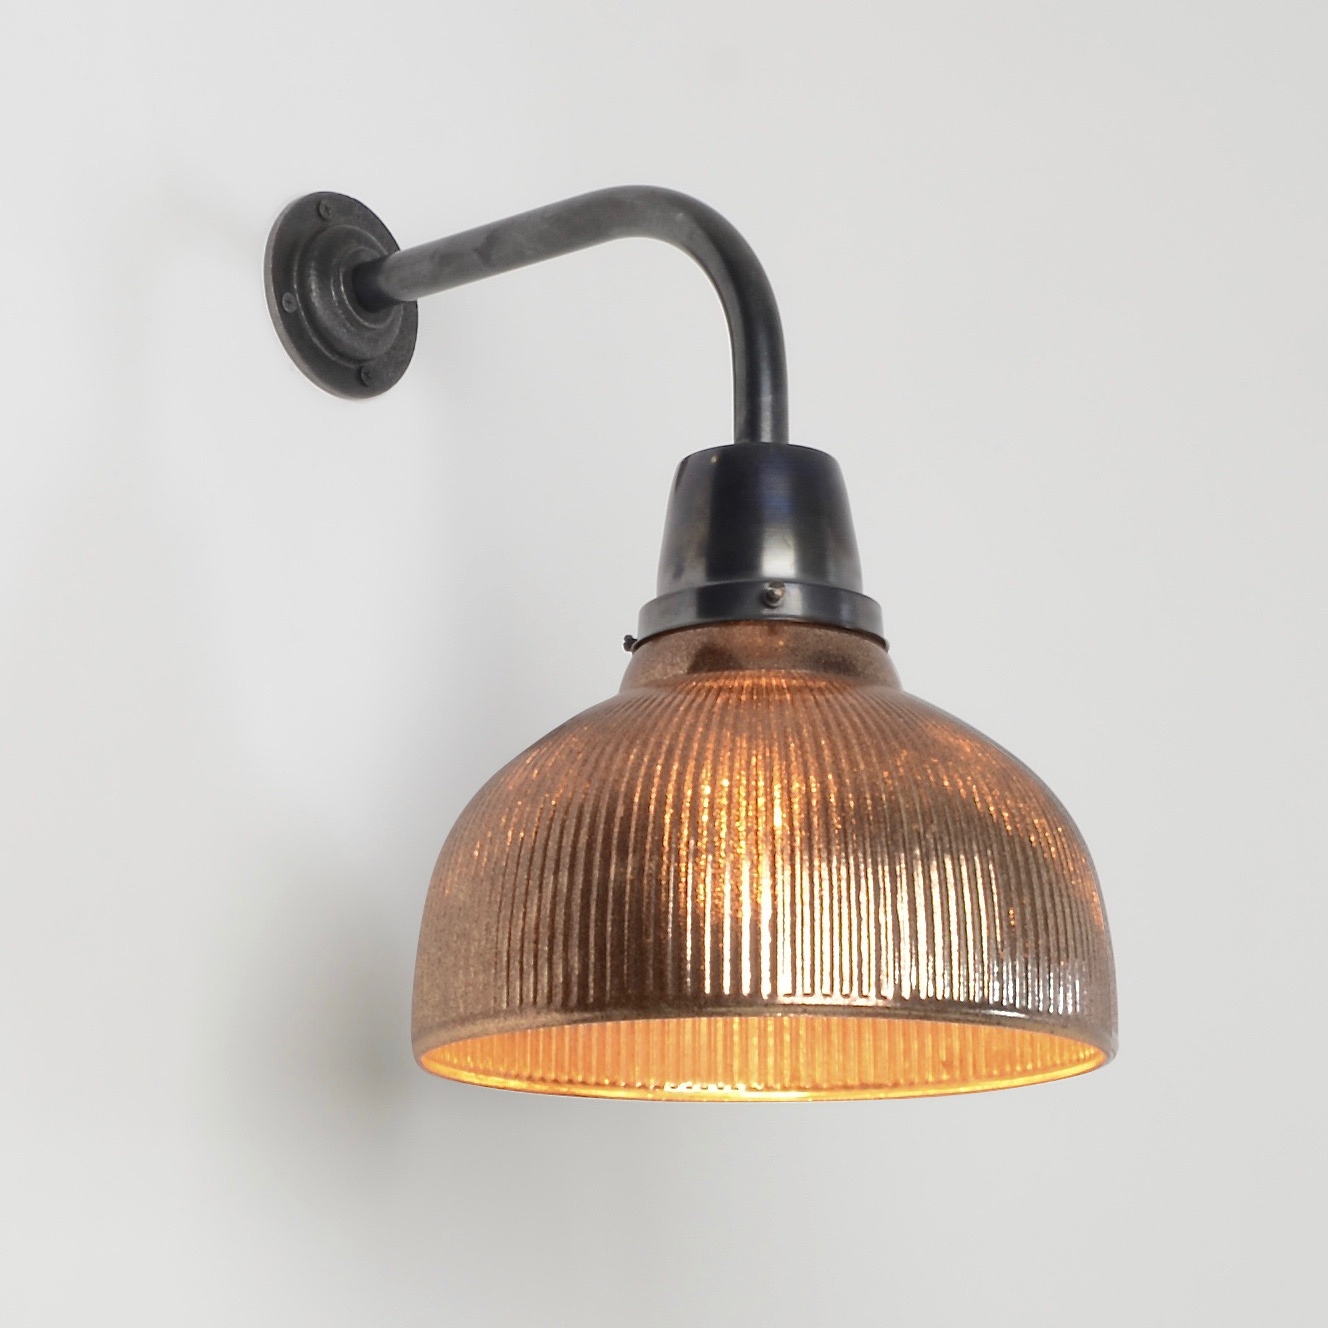 Vintage Industrial Wall Lamps : Vintage industrial wall lights add security to your outdoor space Warisan Lighting